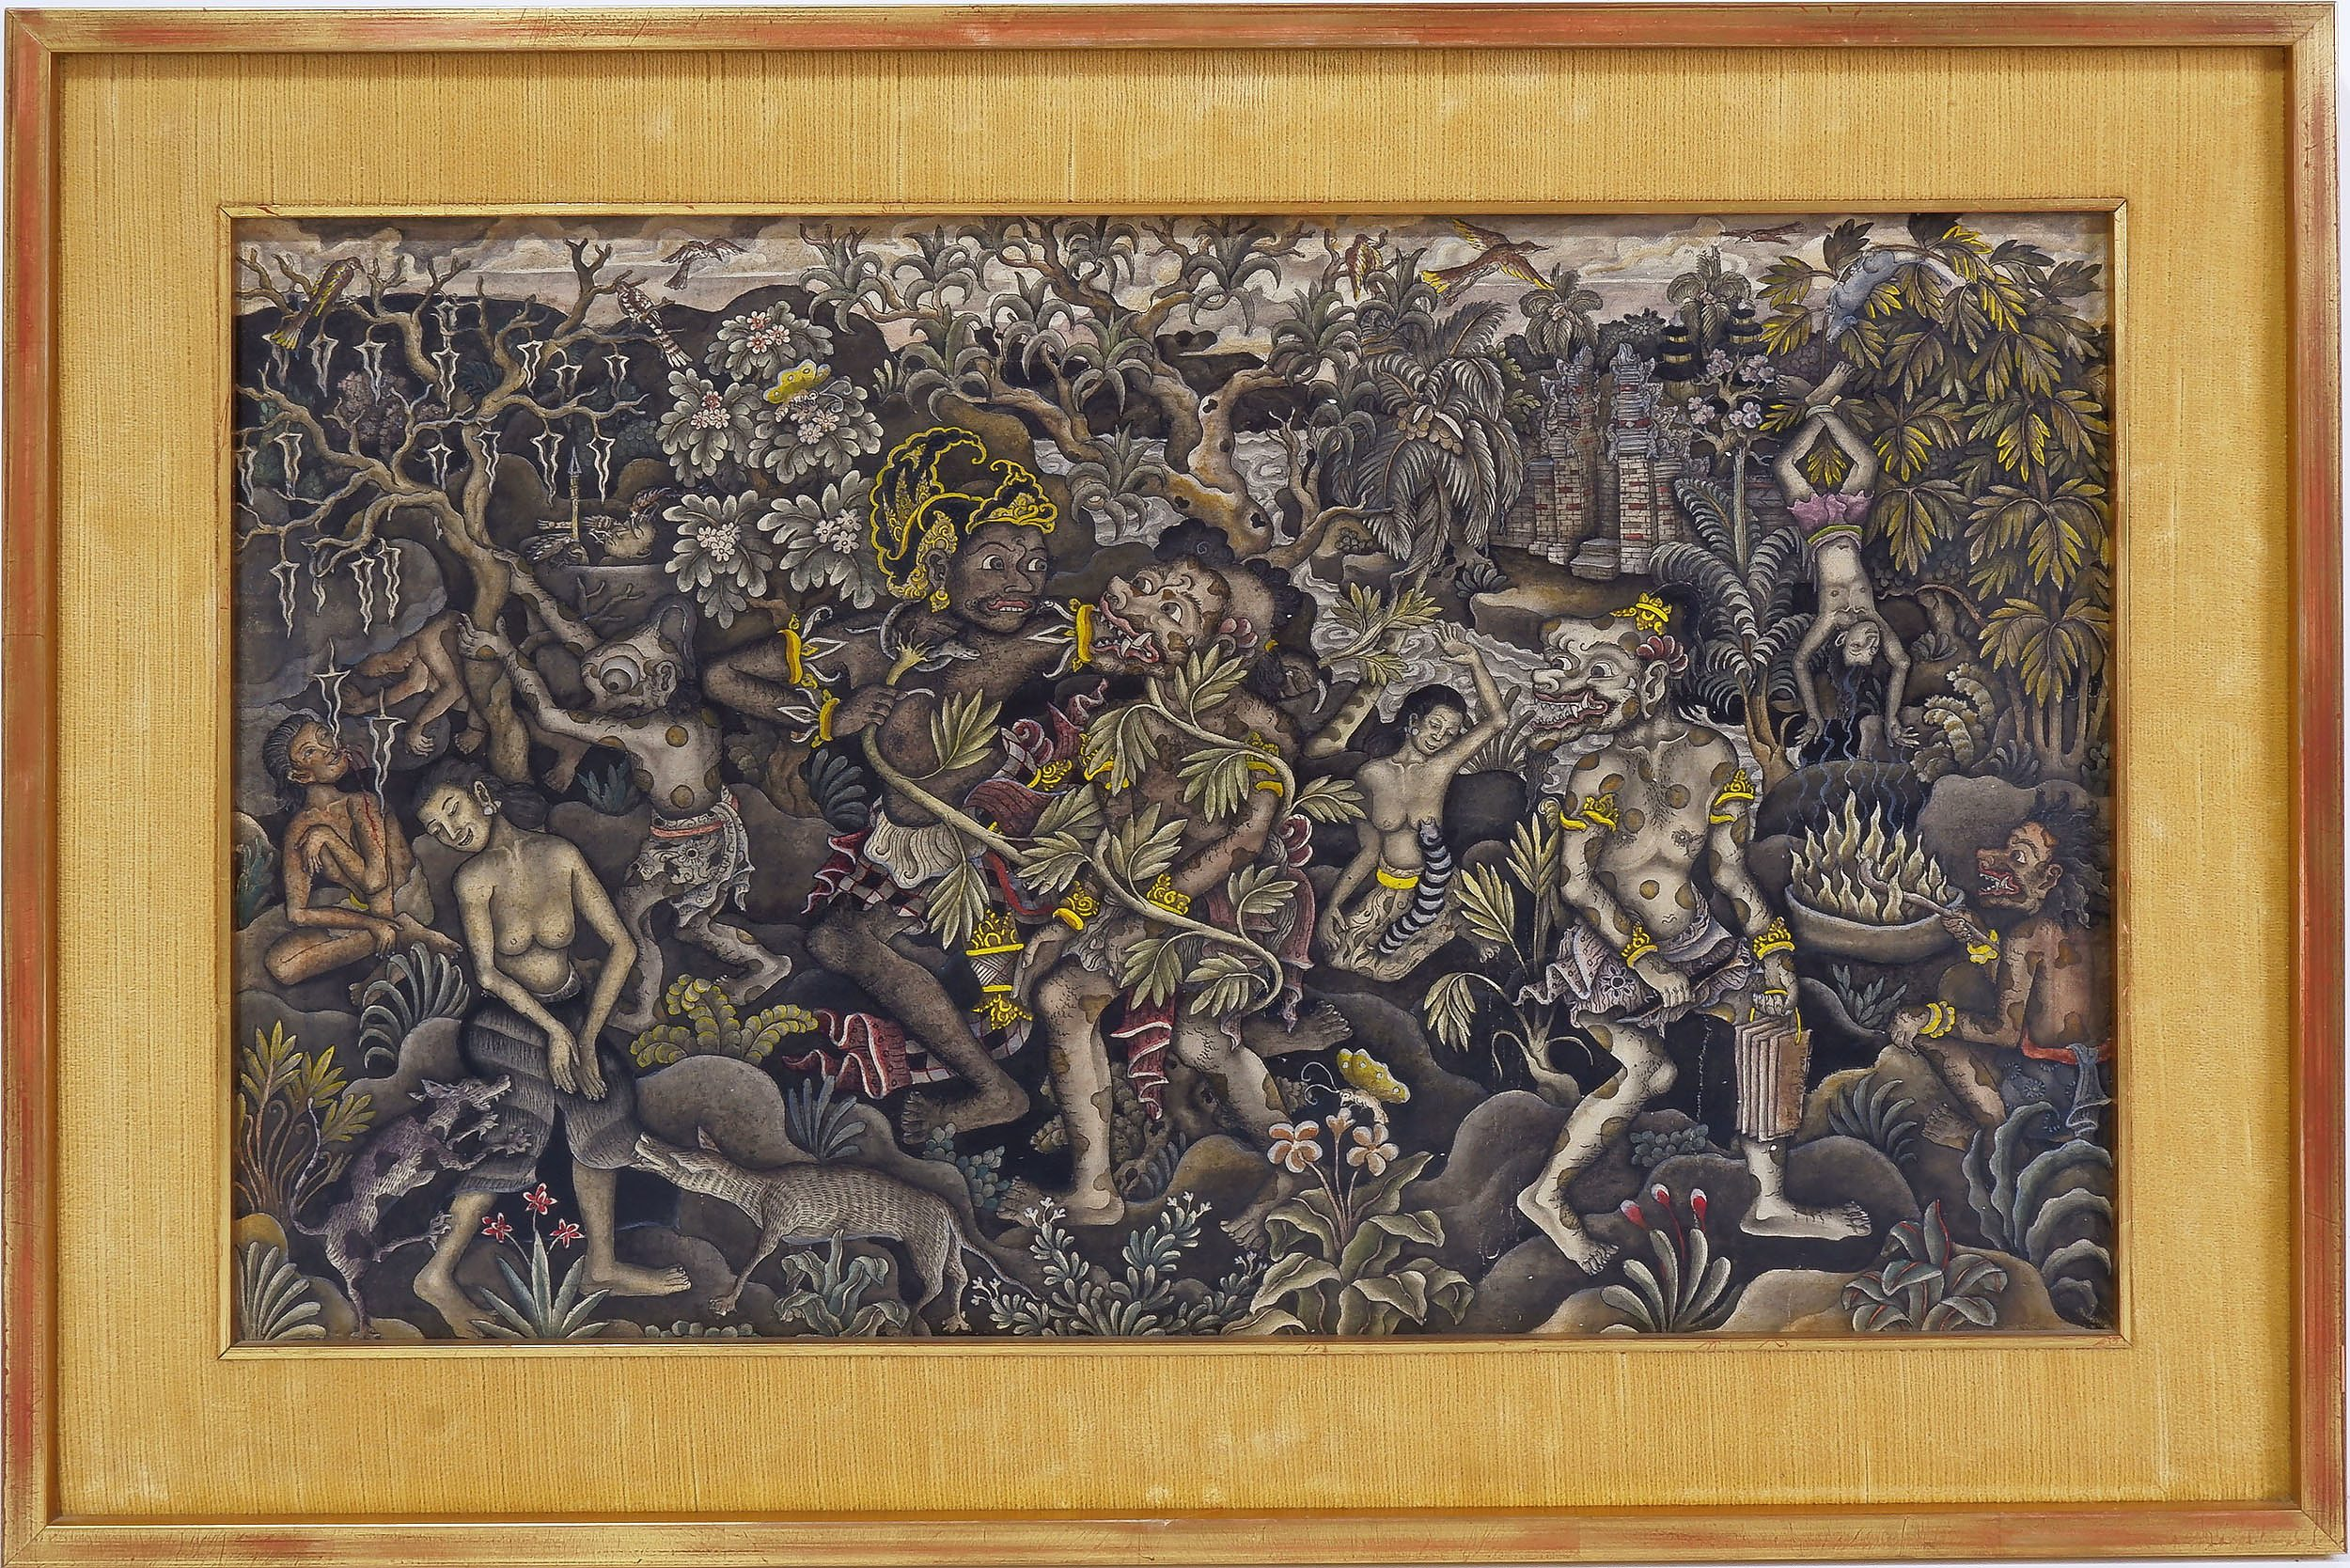 'Balinese Ink and Tempera on Linen, Batuan Mid 20th Century '